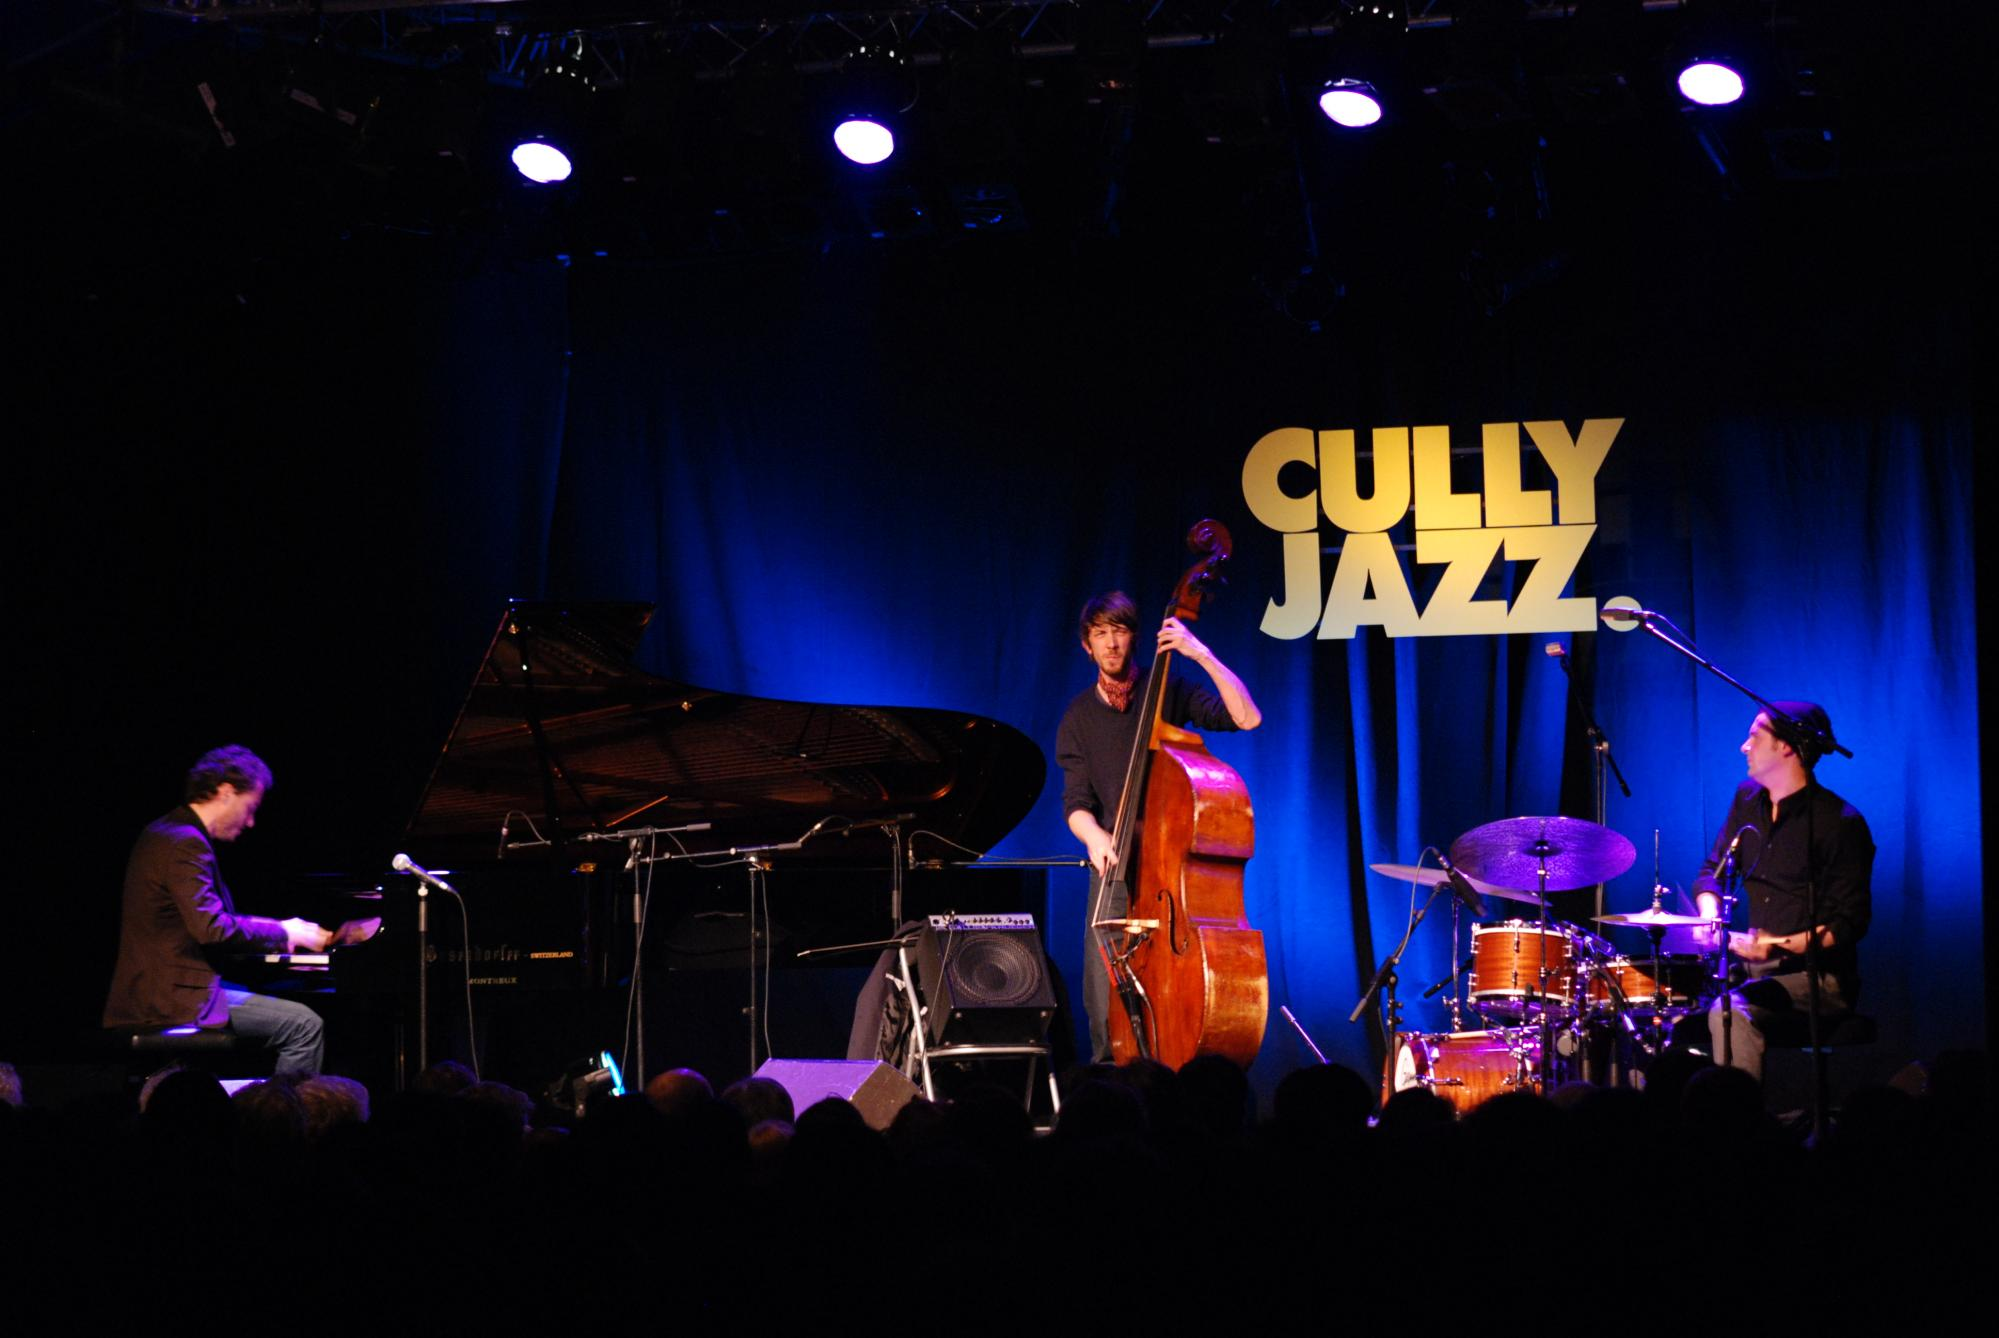 Cully Jazz